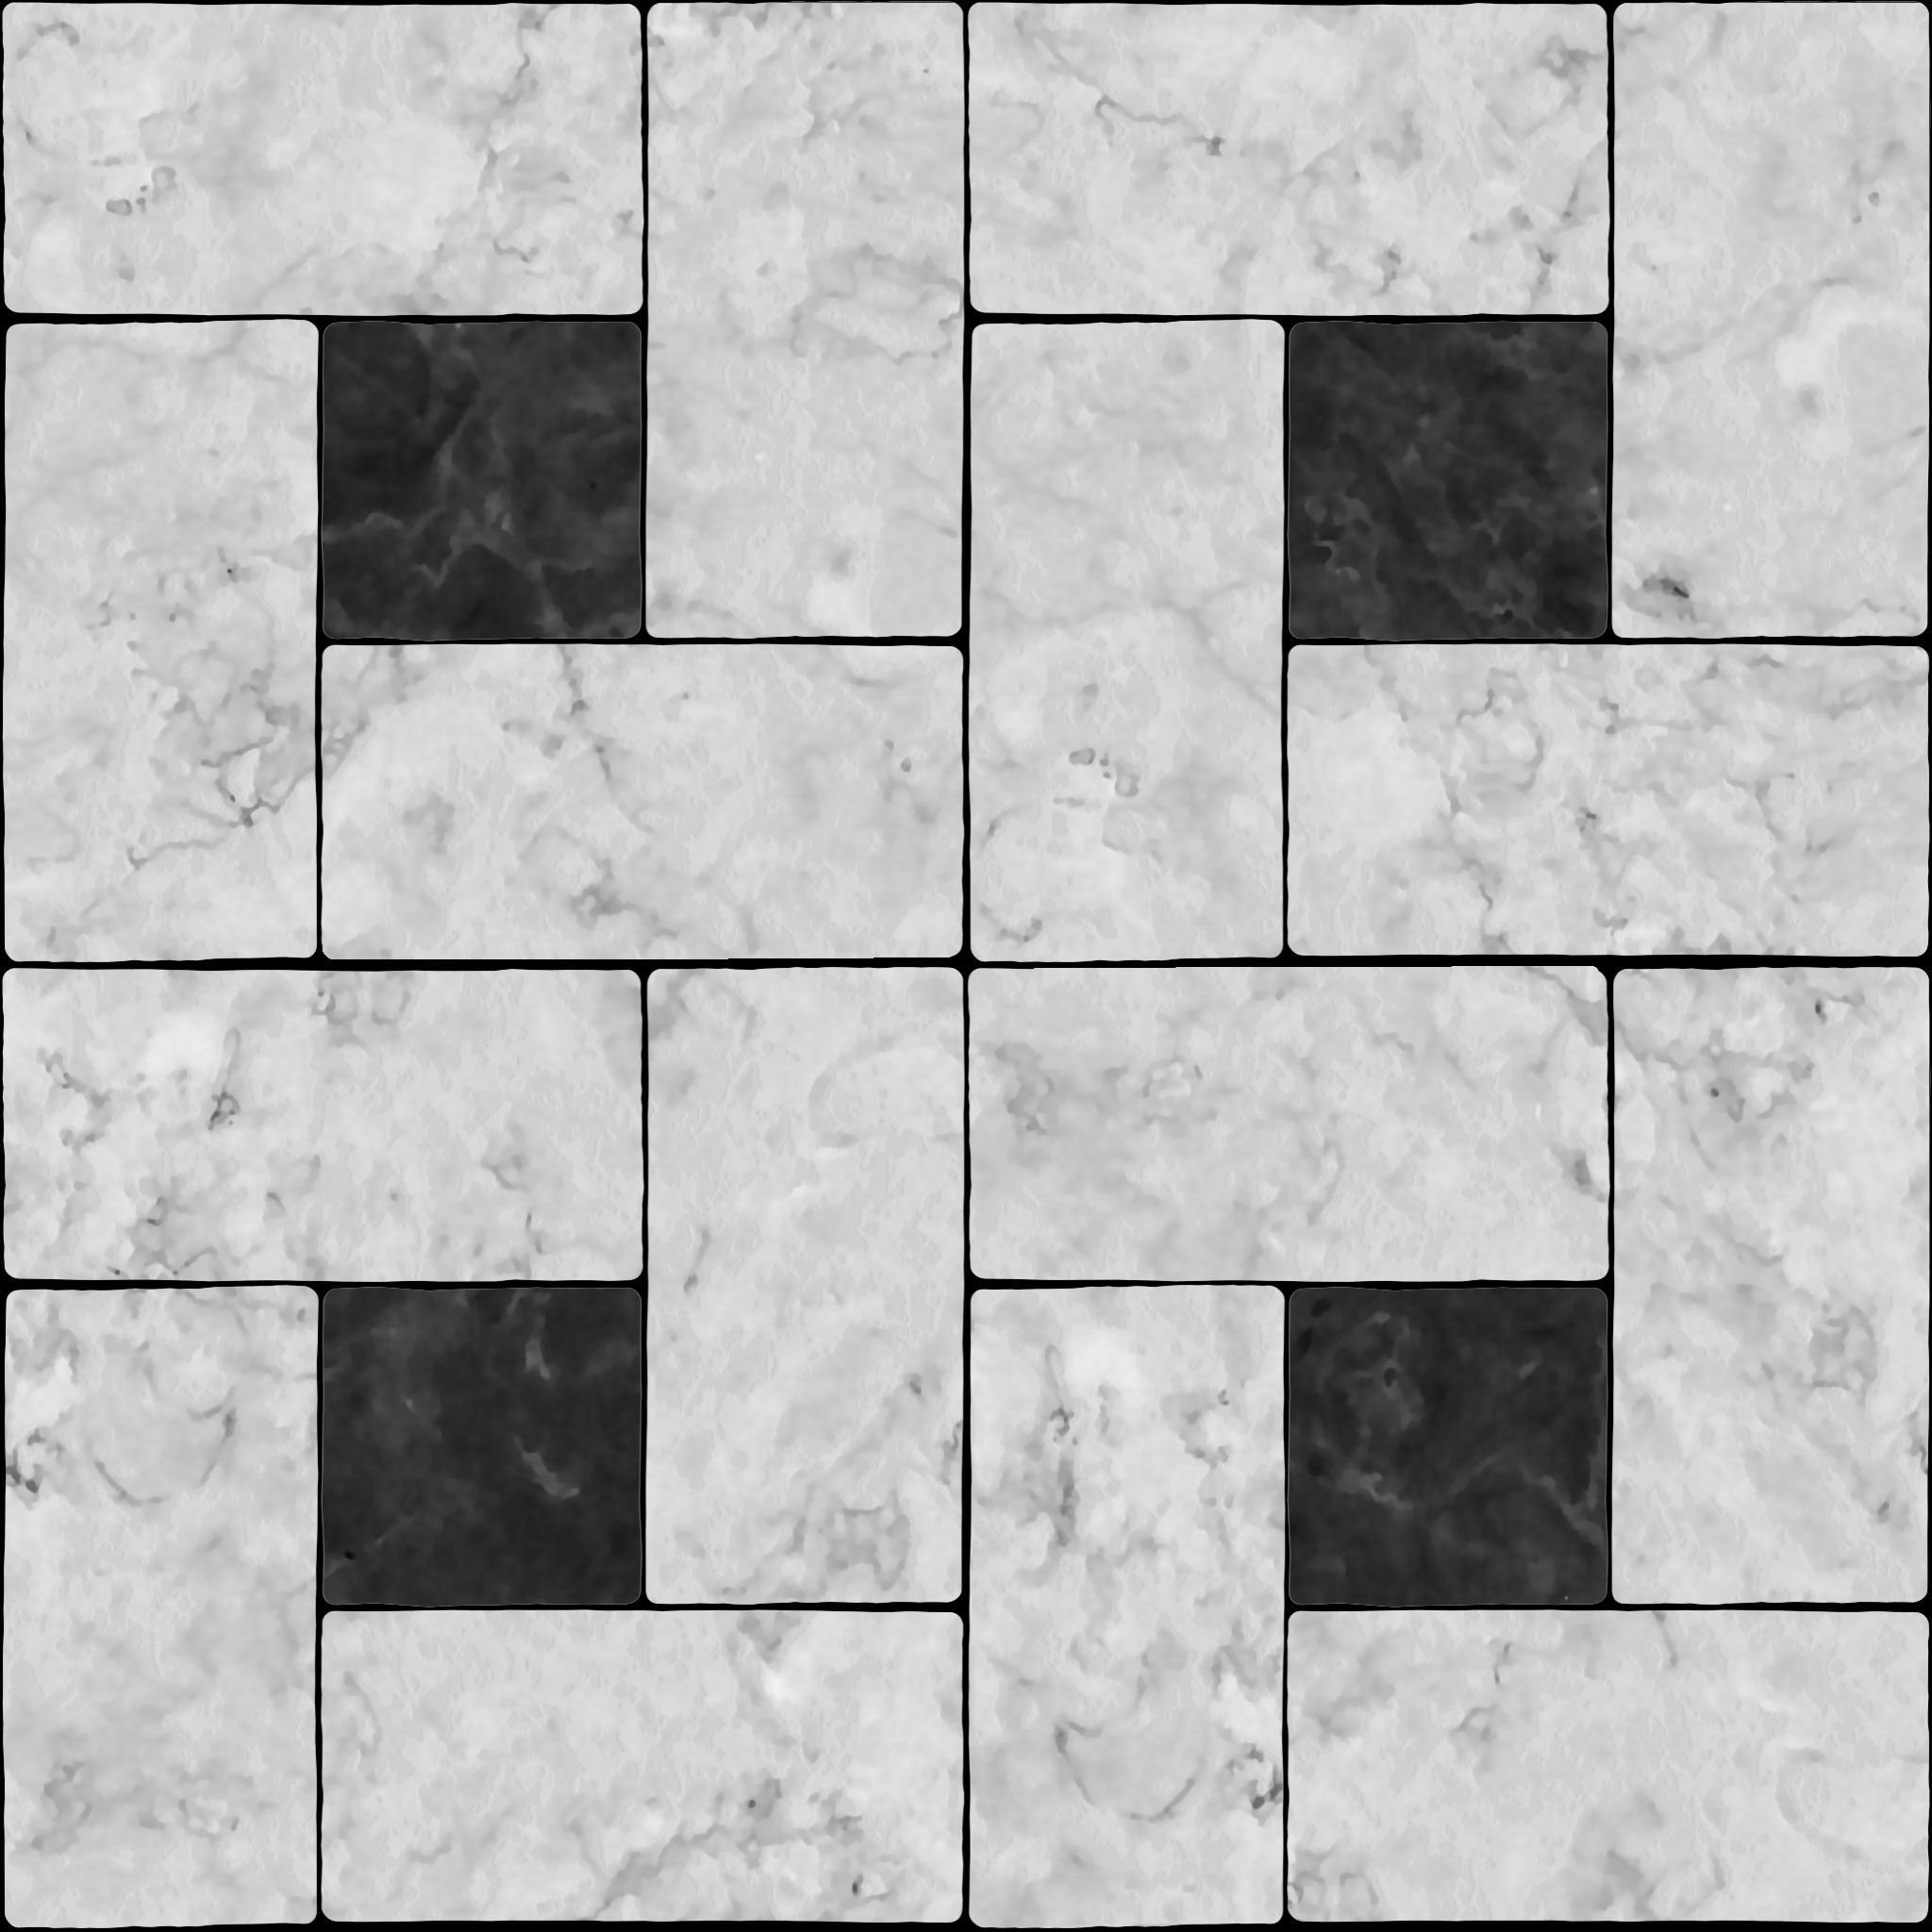 Bathroom Tiles Texture tile flooring texture 2048 x 2048 resolution | ideas for the house